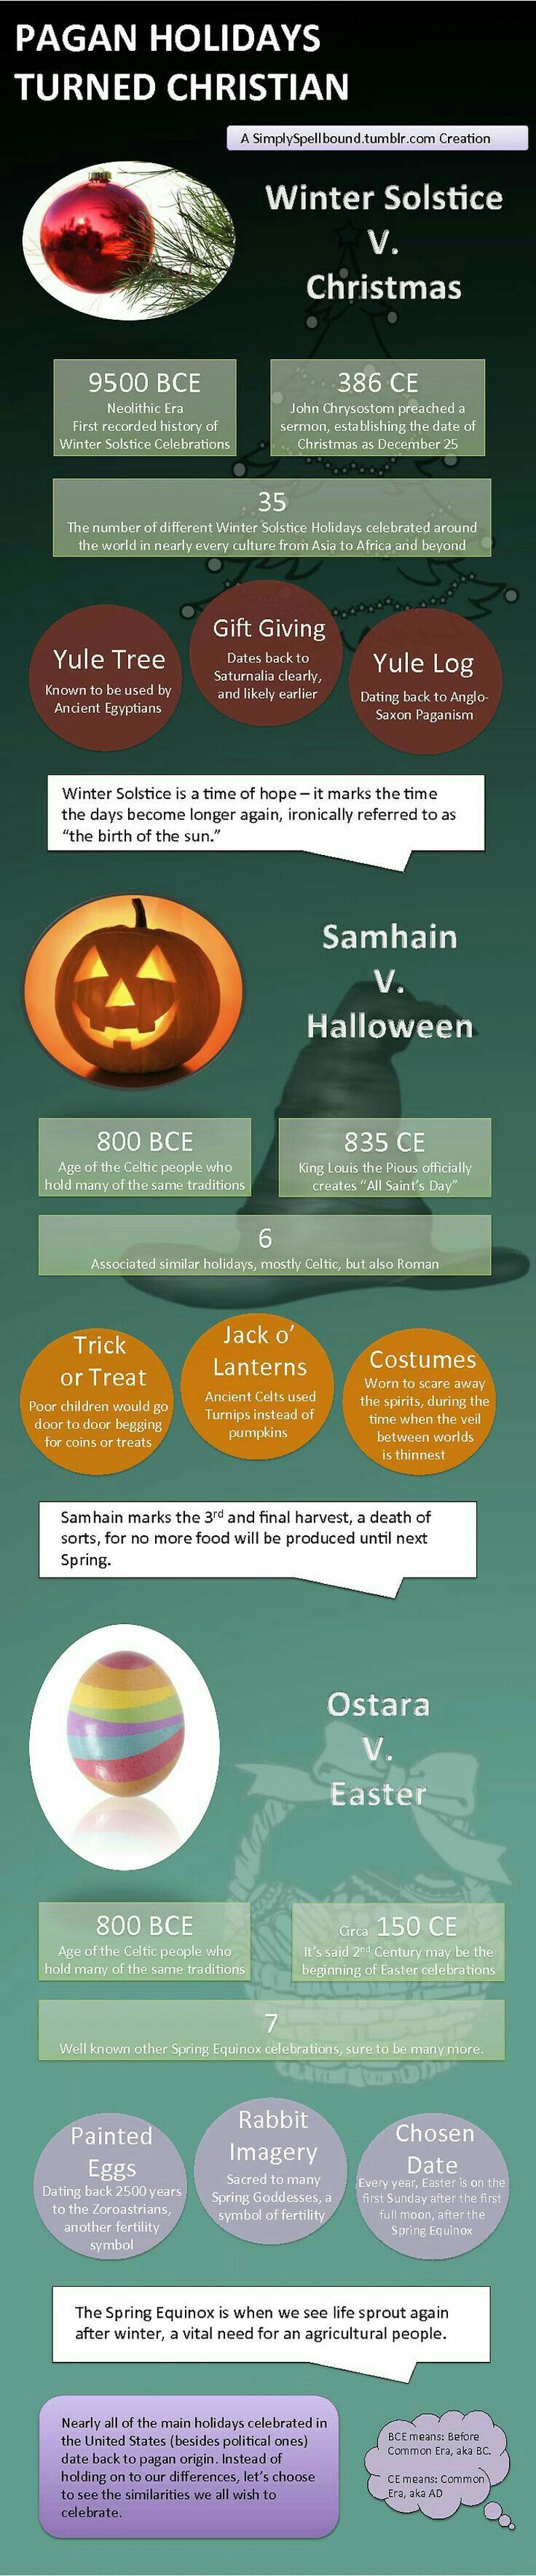 christmas halloween easter are pagan traditions adopted by christianity good for teaching kids the true origins of different celebrations and why you - True Meaning Of Halloween Christian